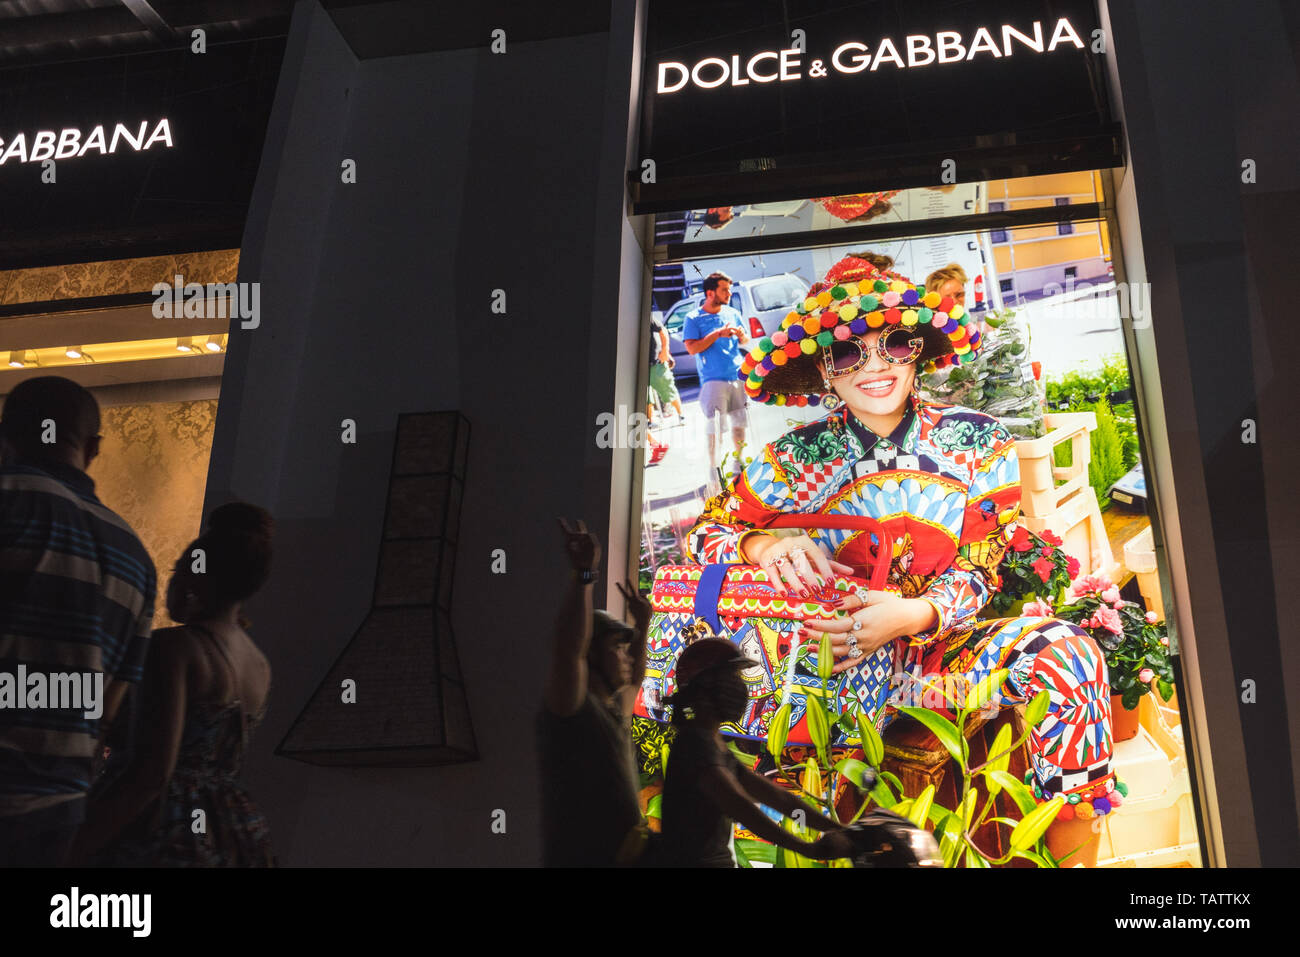 Ho Chi Minh City, Vietnam - April 23, 2019: Dolce & Gabbana shop's exterior with people passing by in the night street, on a motorbike and afoot. - Stock Image